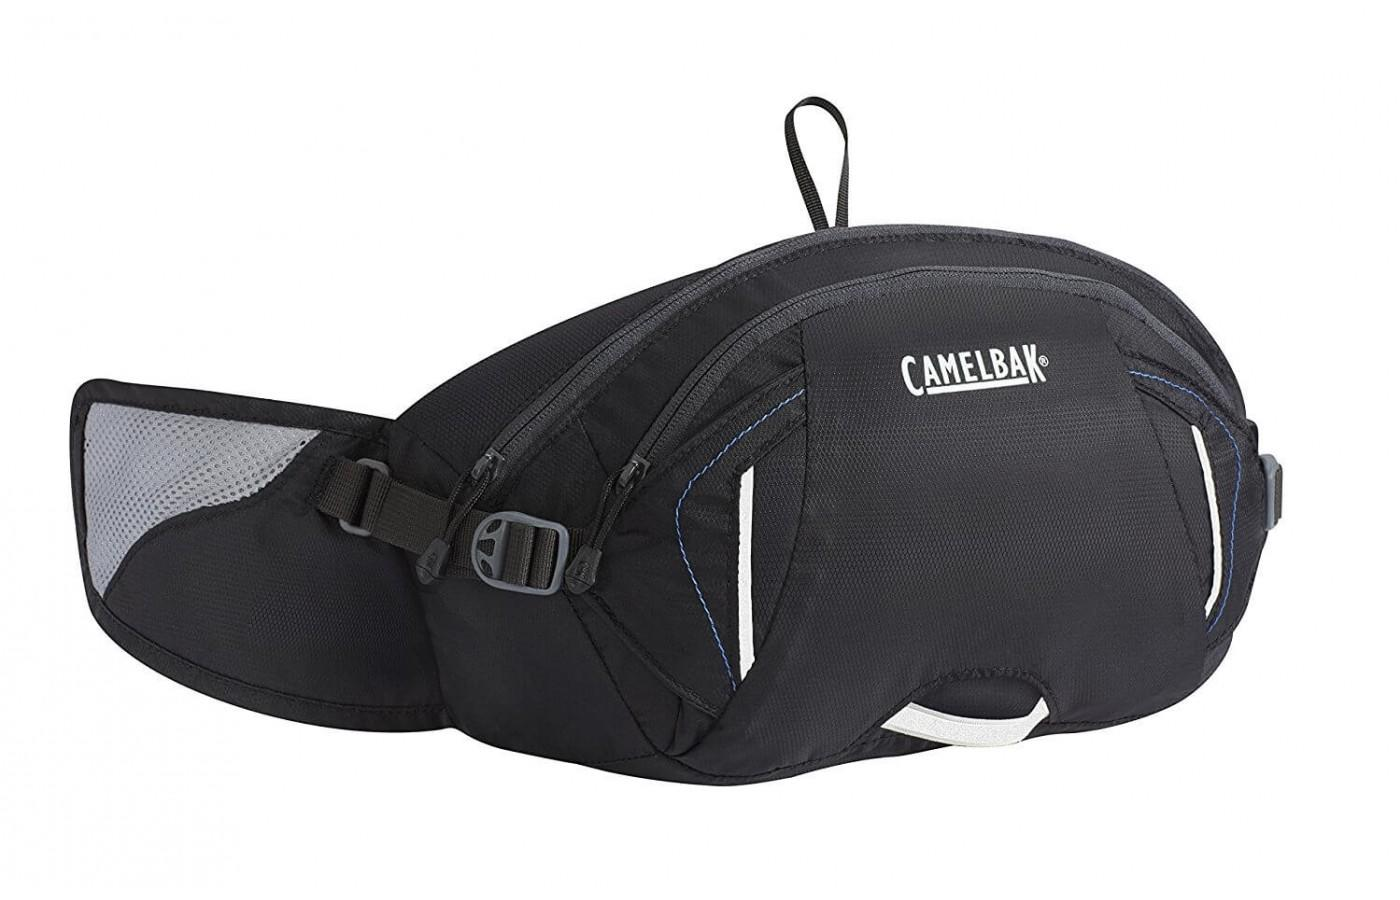 The CamelBak Flash Flo LR Belt was designed to offer easy access to water during a run.